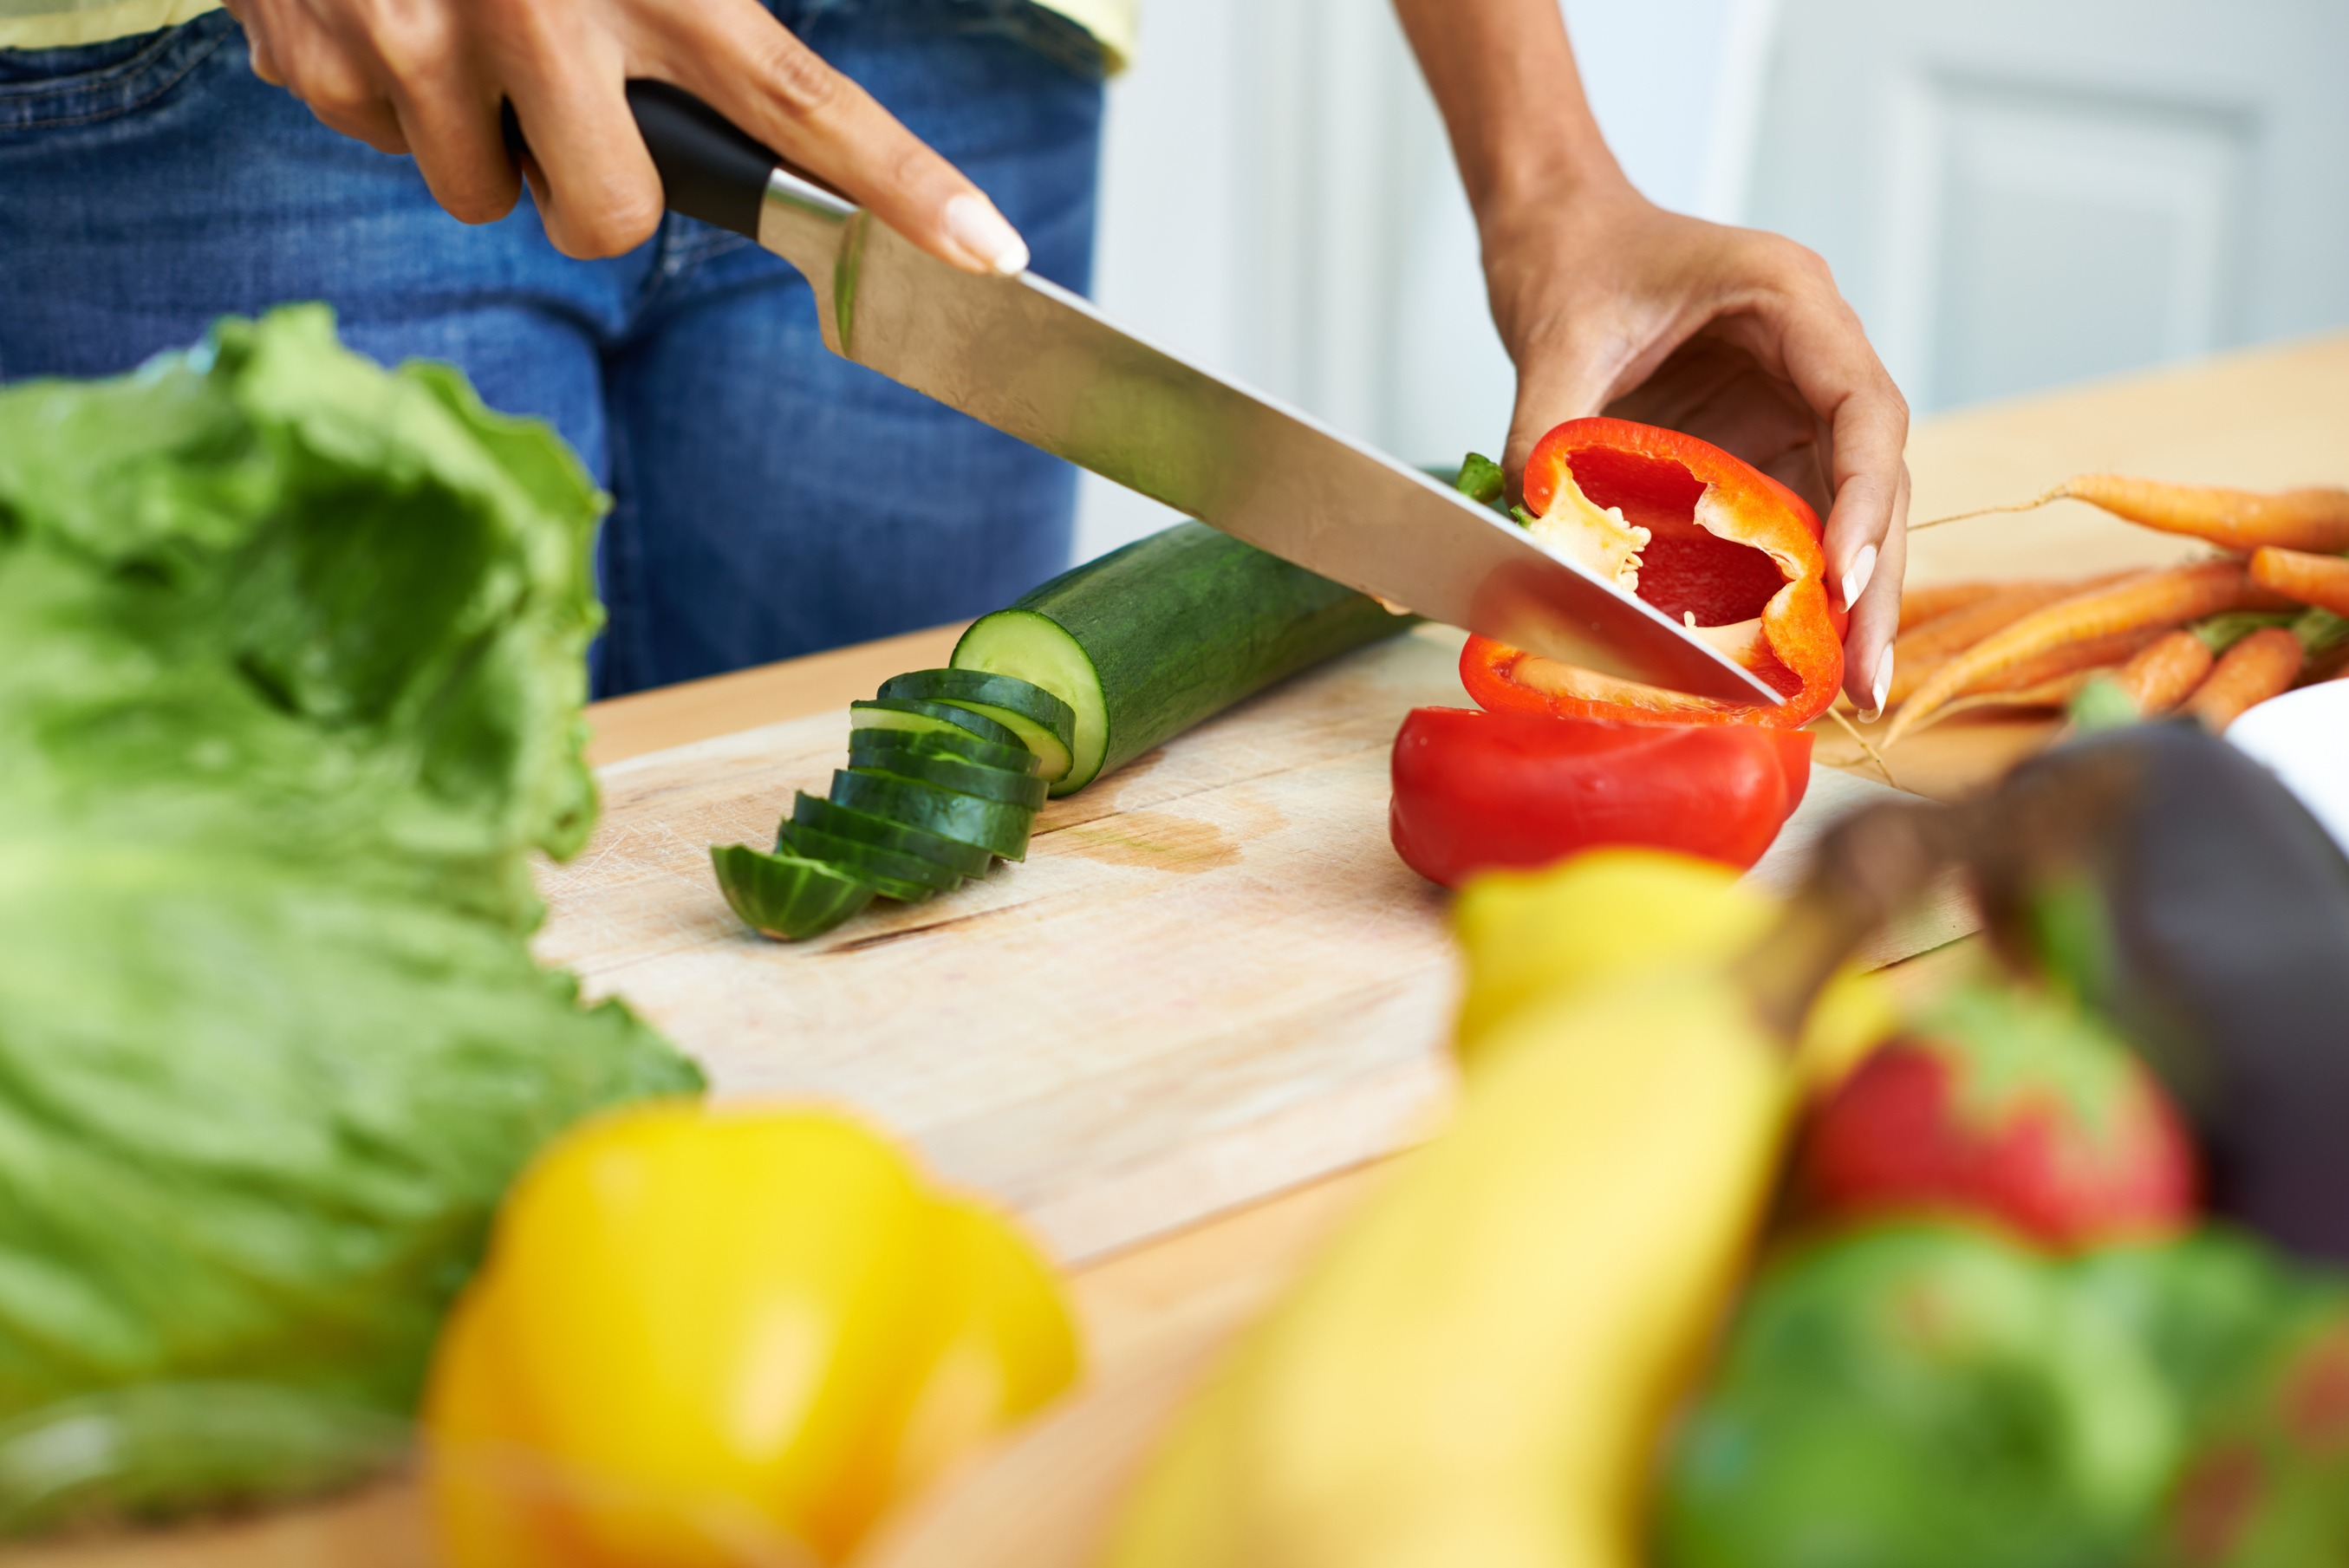 Only the freshest ingredients